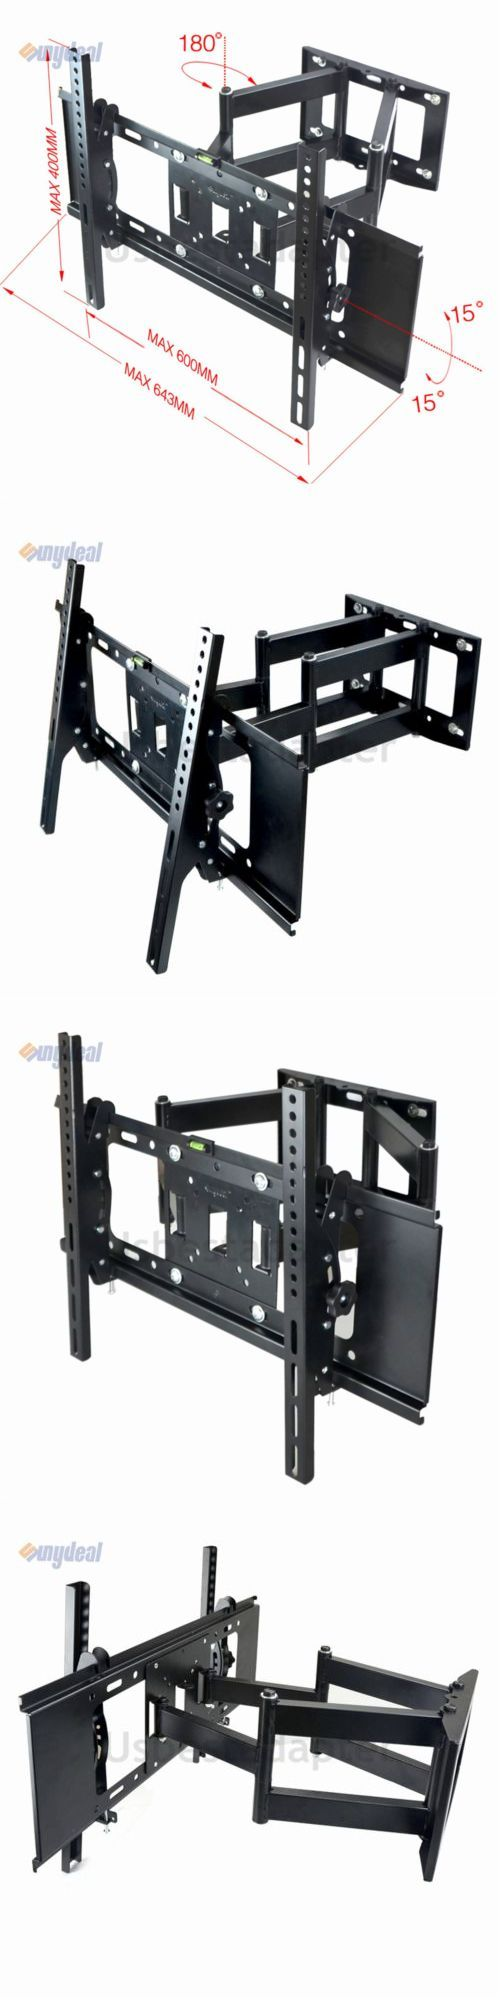 TV Mounts and Brackets: Dual Arm Articulating Swivel Tilt Led Tv Wall Mount 42 46 47 50 52 55 60 65 70 -> BUY IT NOW ONLY: $30.22 on eBay!